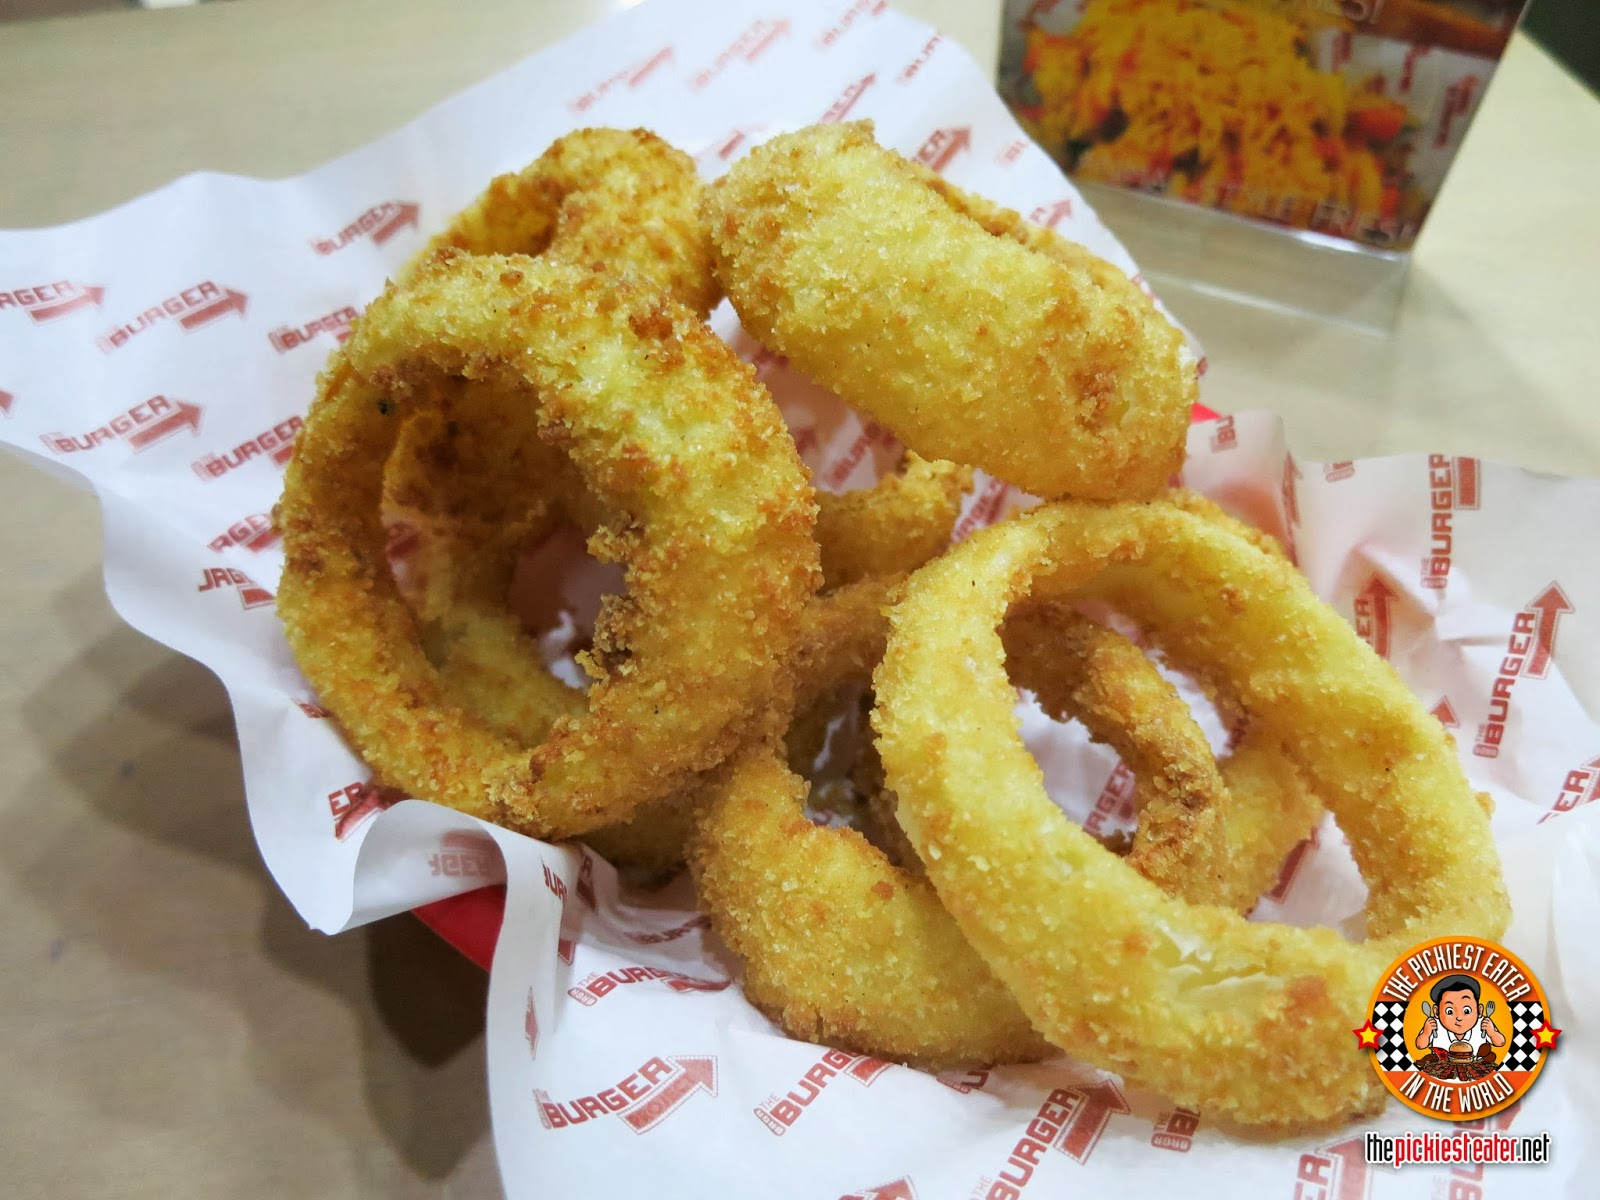 BRGR Project Makati onion rings